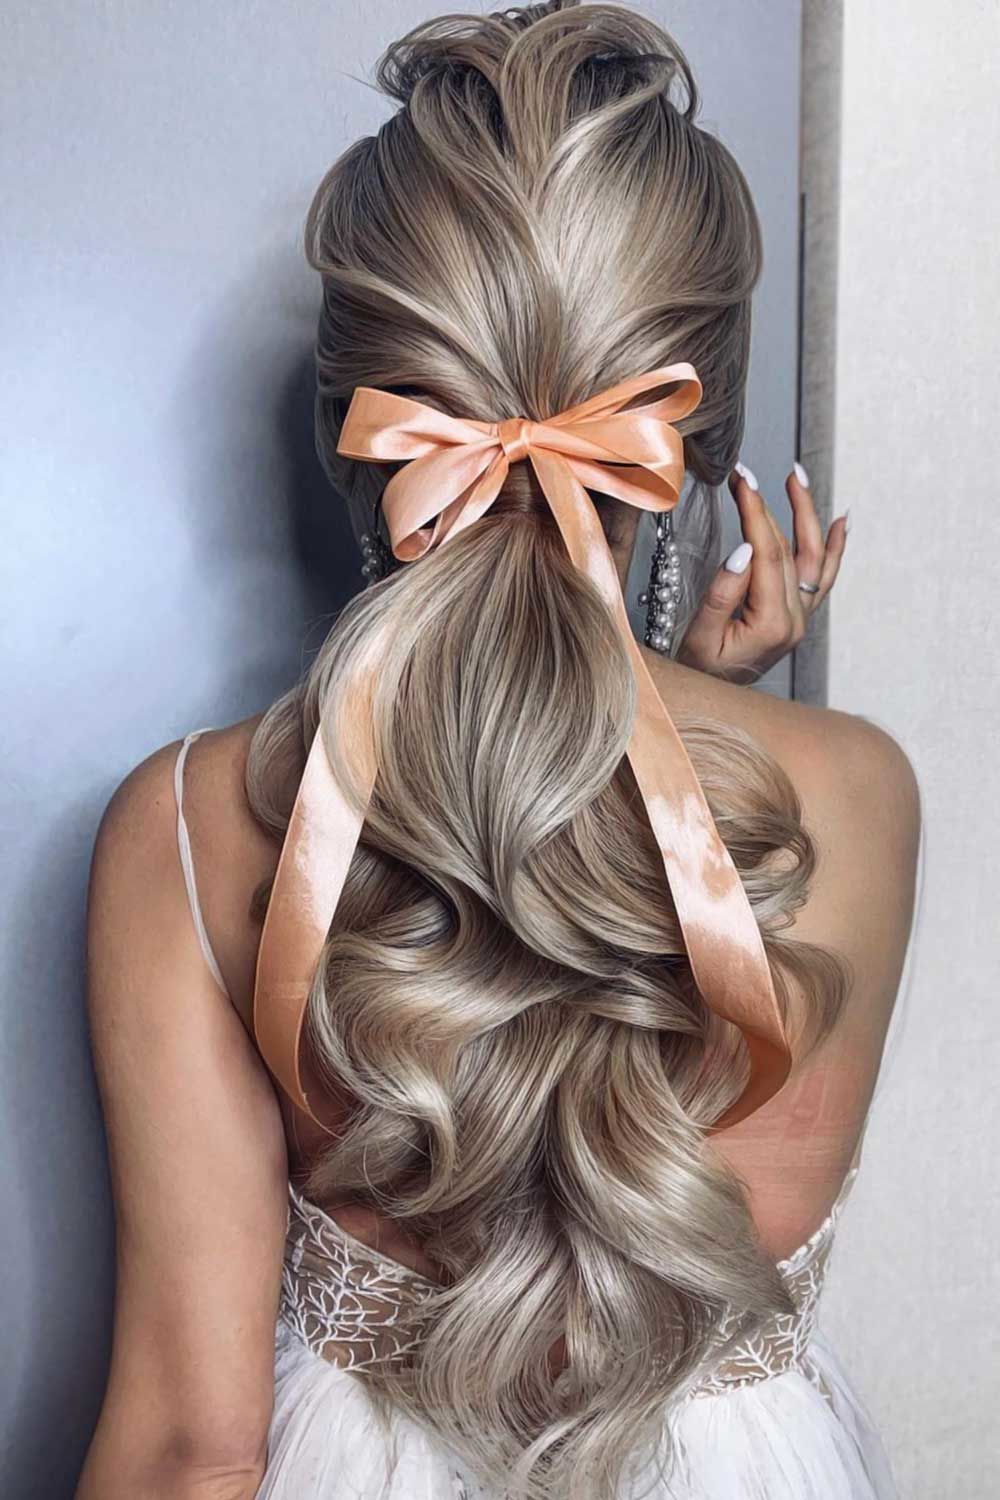 50 Bridesmaid Hair Styling Ideas Lovehairstyles Com In 2020 Hair Styles Wedding Ponytail Hairstyles Down Hairstyles